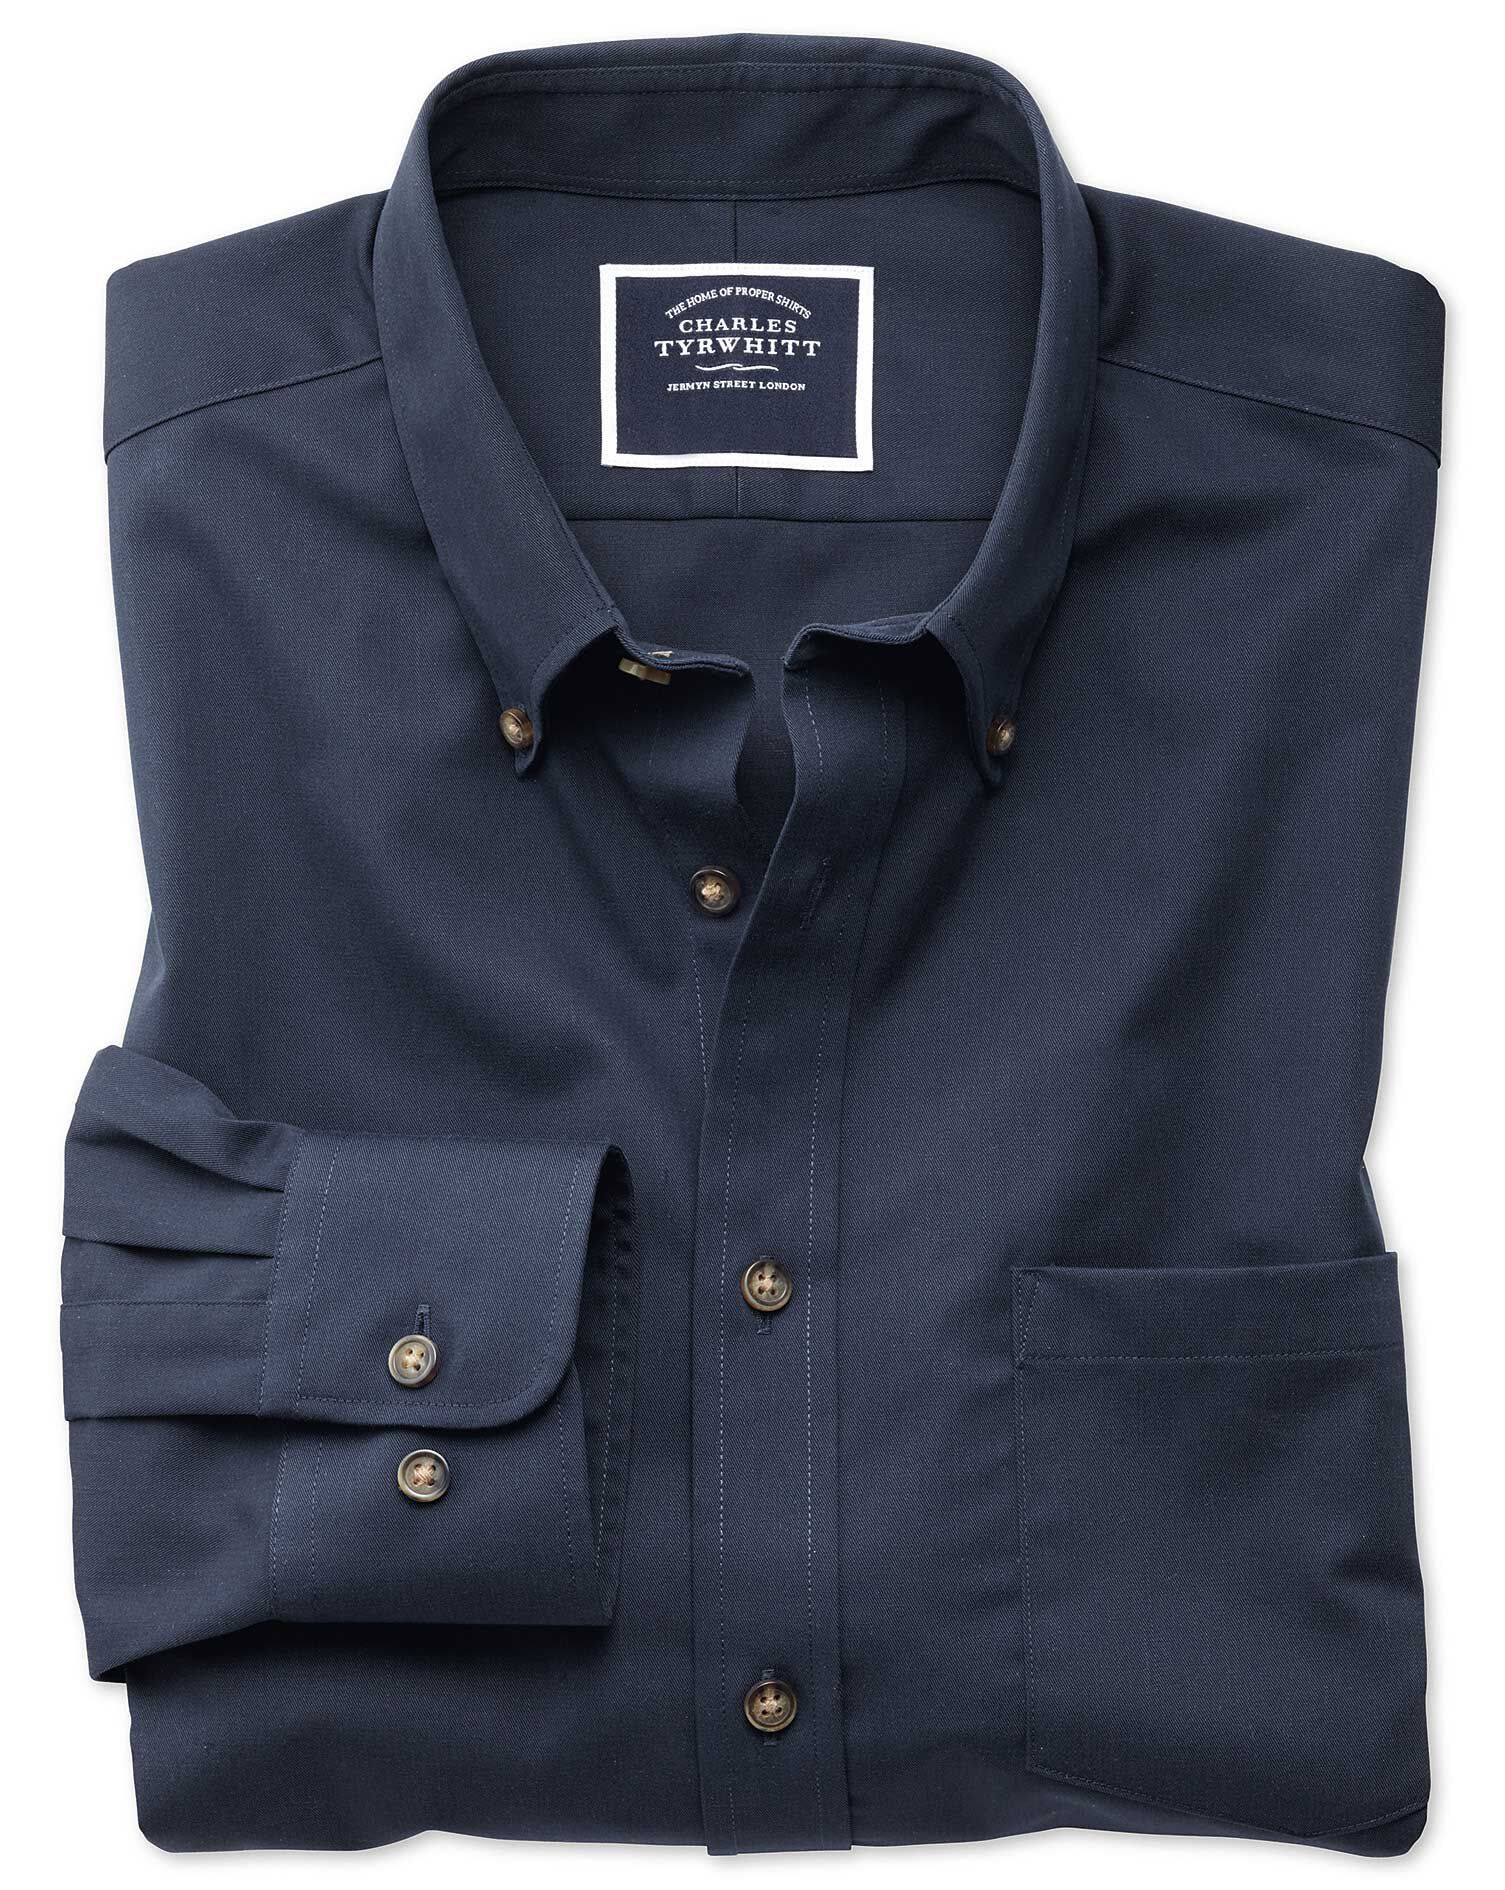 Classic Fit Button-Down Non-Iron Twill Navy Blue Cotton Shirt Single Cuff Size XXXL by Charles Tyrwh